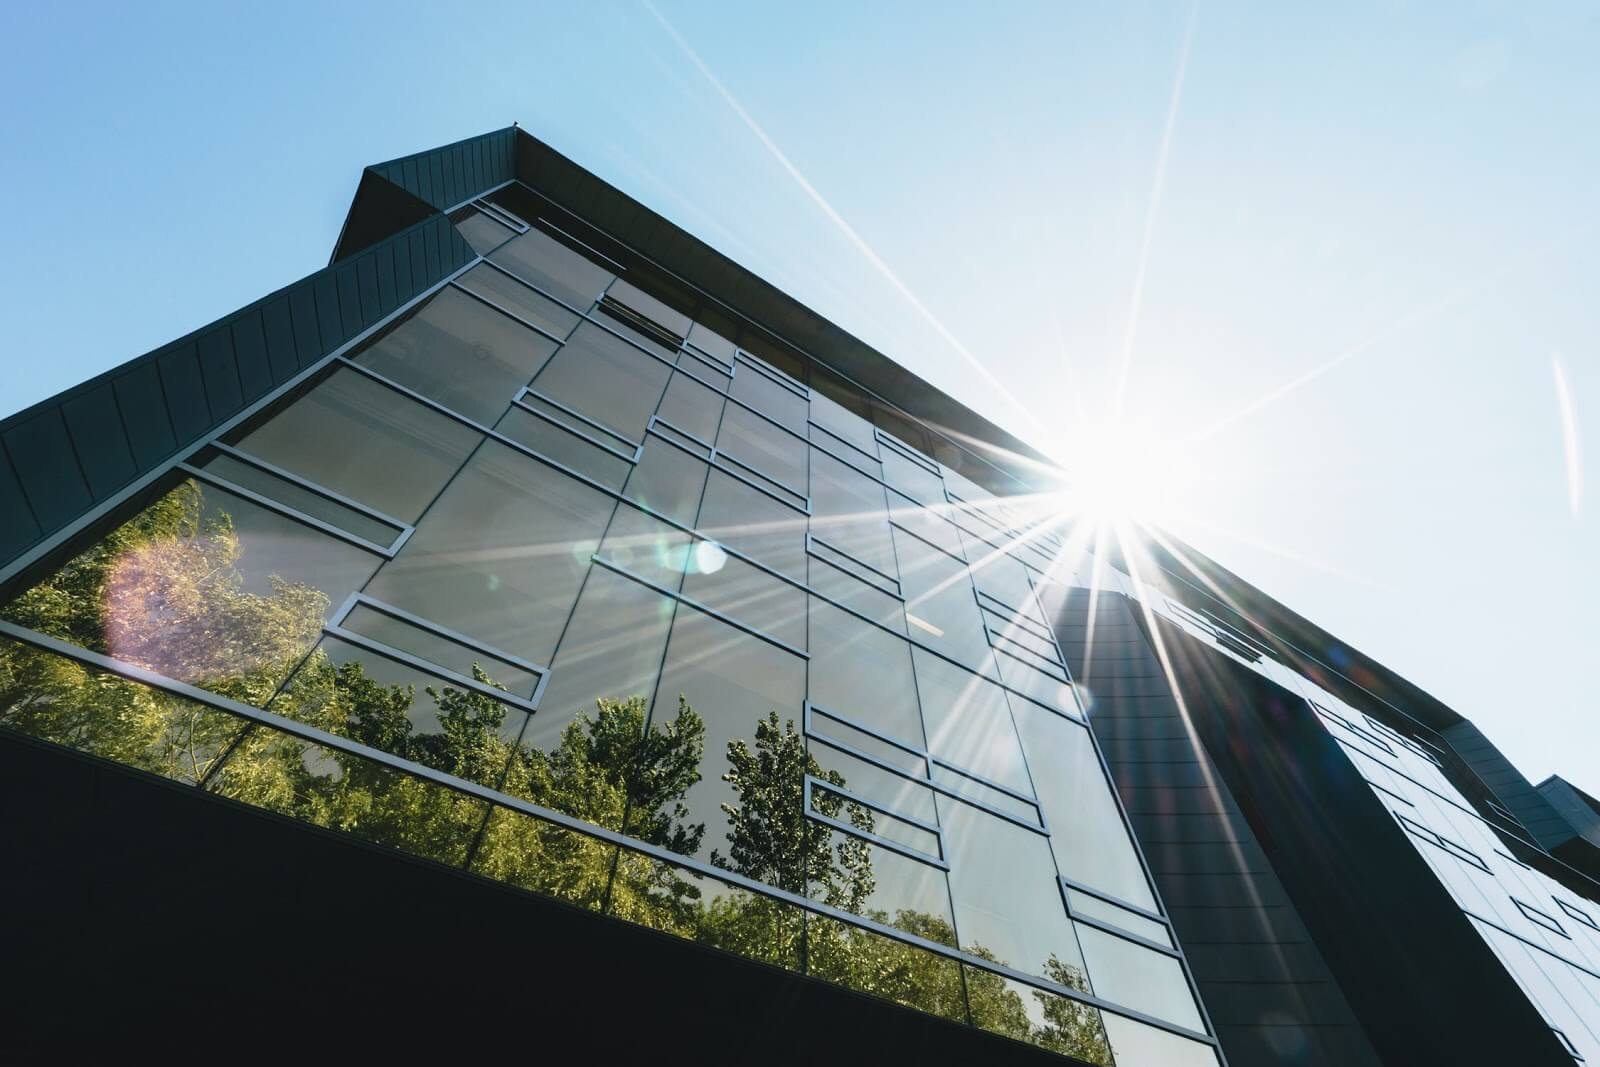 Smart glass reduces the use of air conditioning and space heating in buildings.